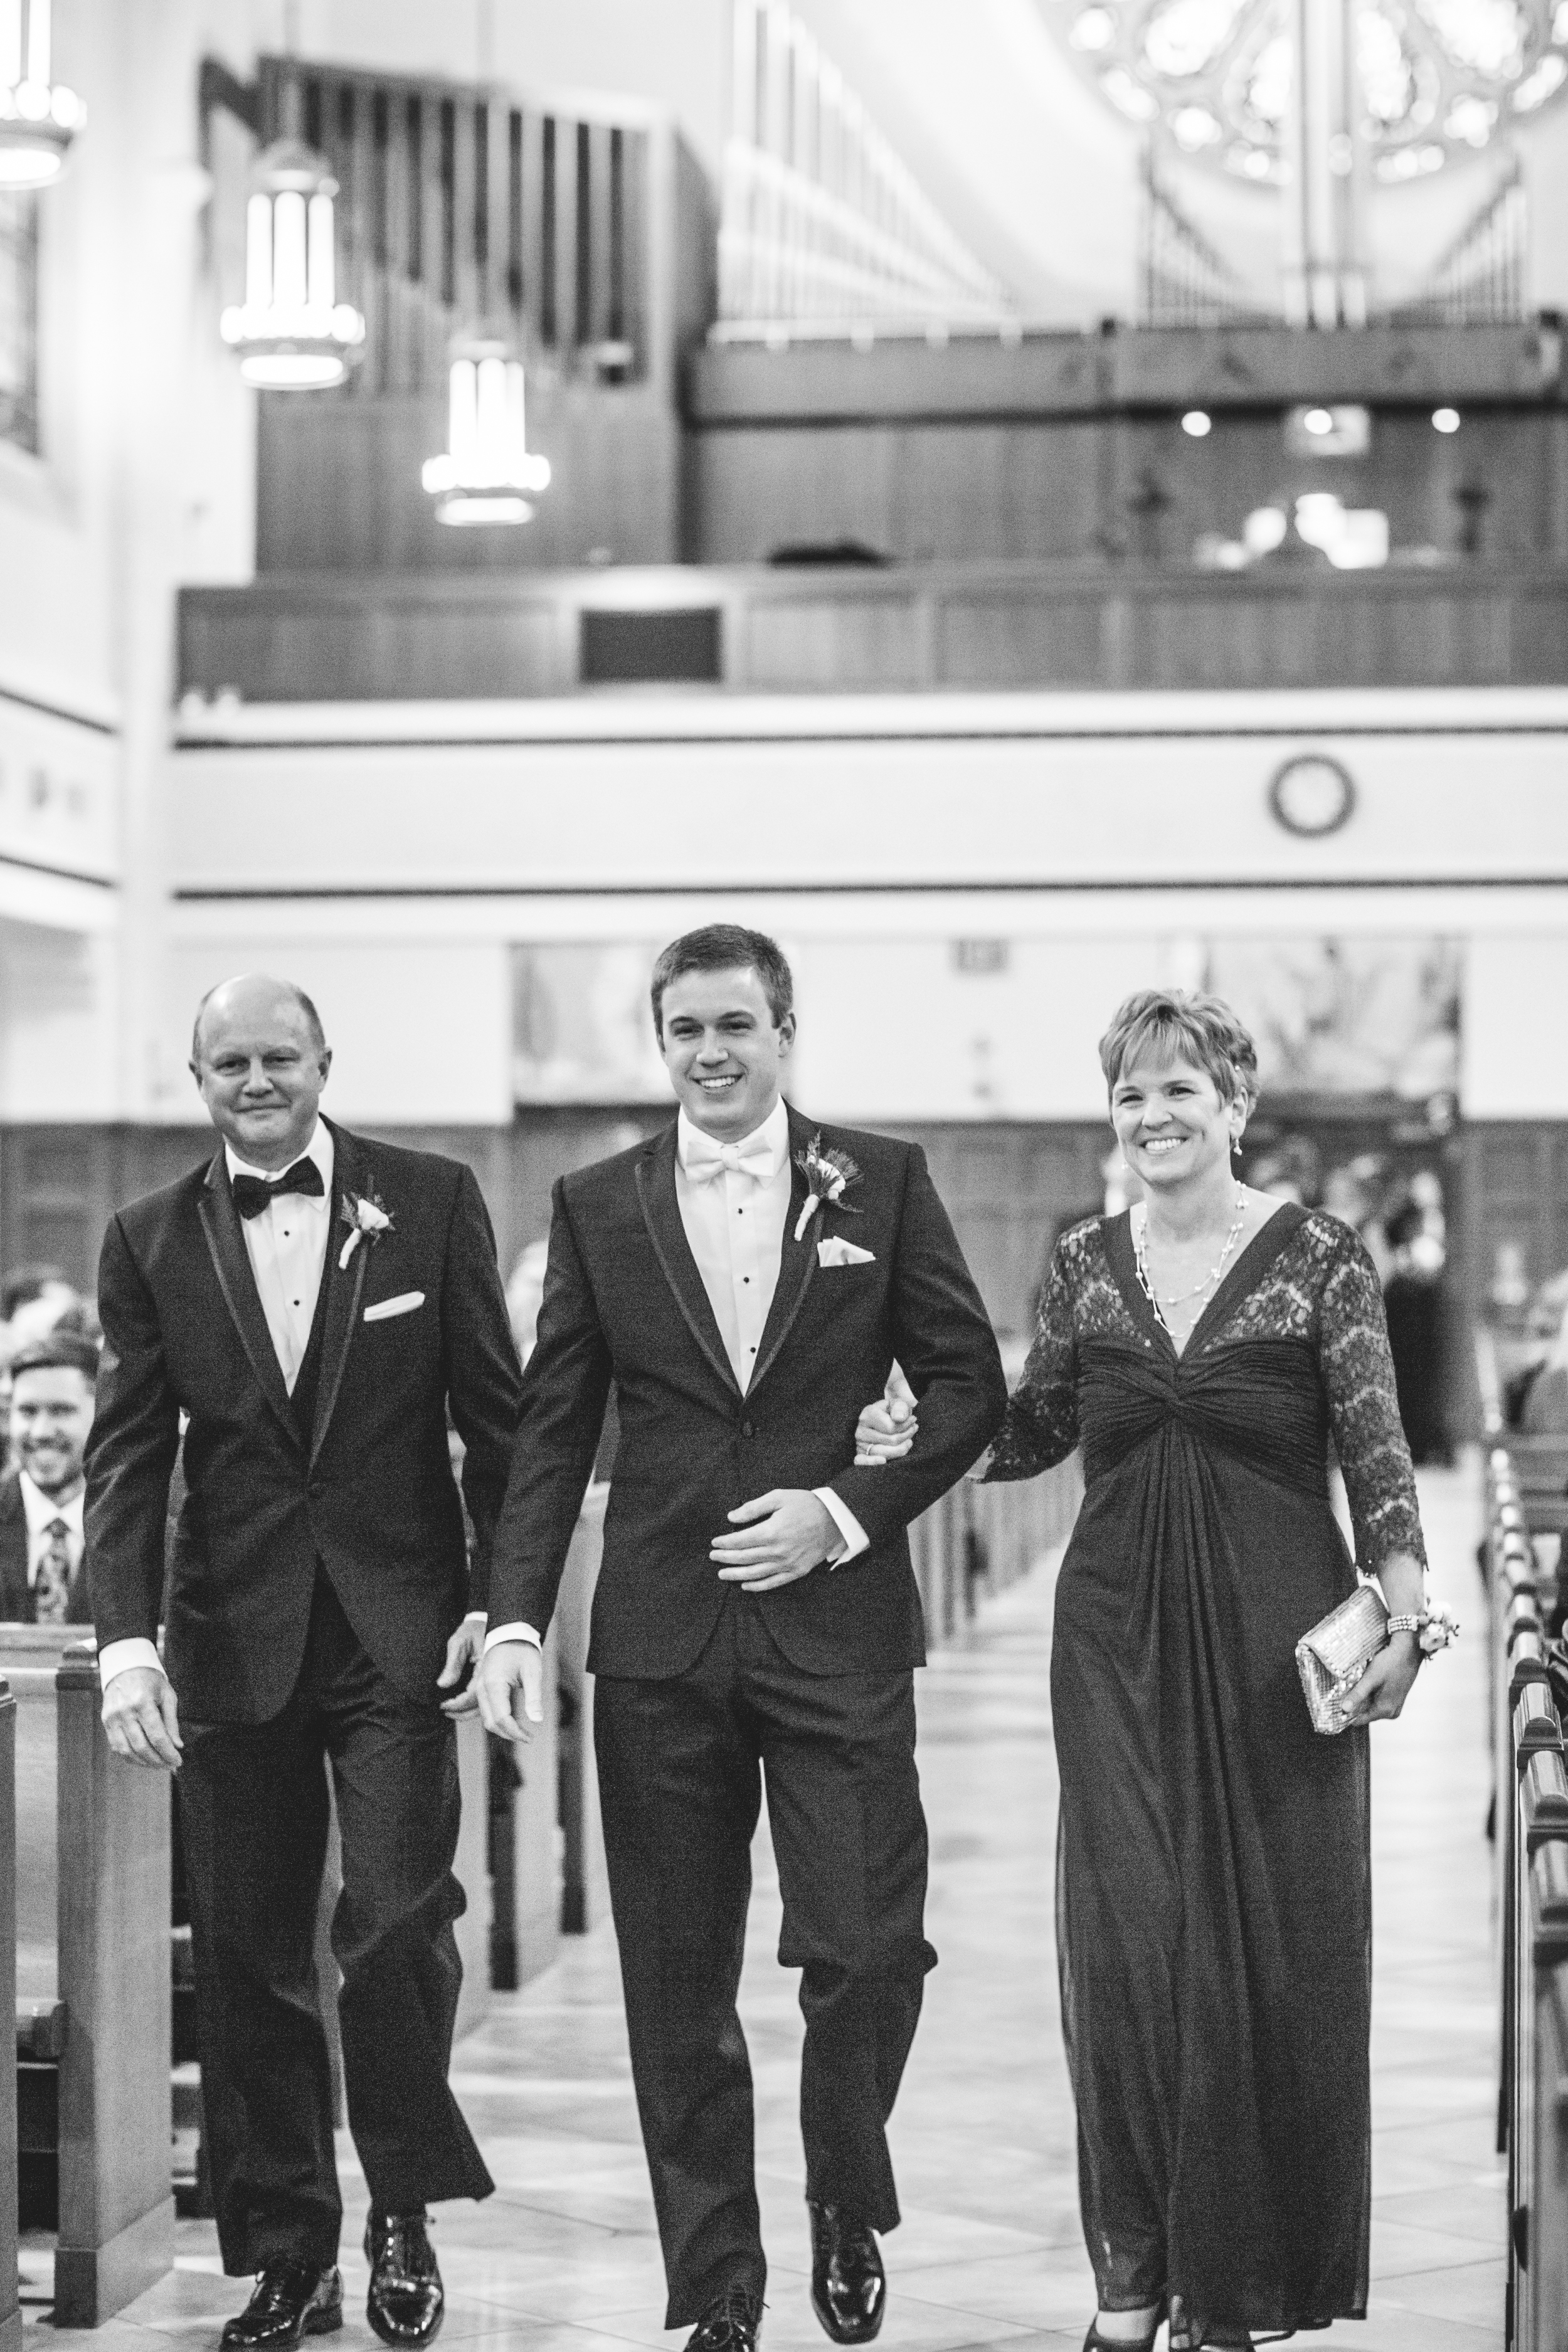 Janelle and Mike wedding at toms country place in cleveland ohio